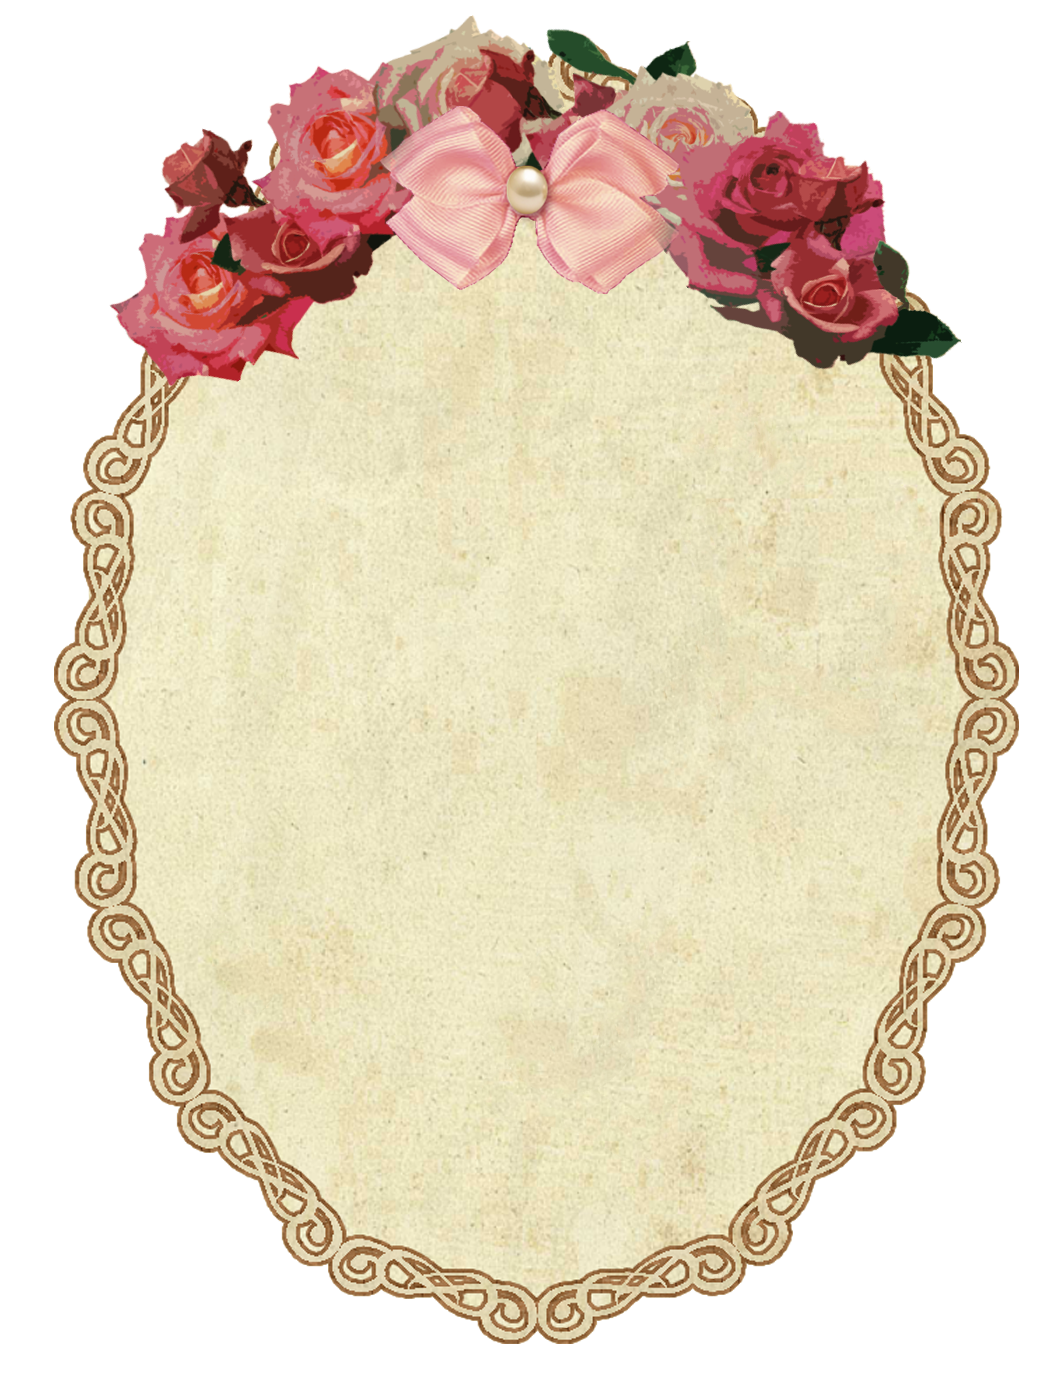 1000 1 FREE GRAPHICS : 7 Vintage Roses cliparts in PNG Transparent . - PNG Vintage